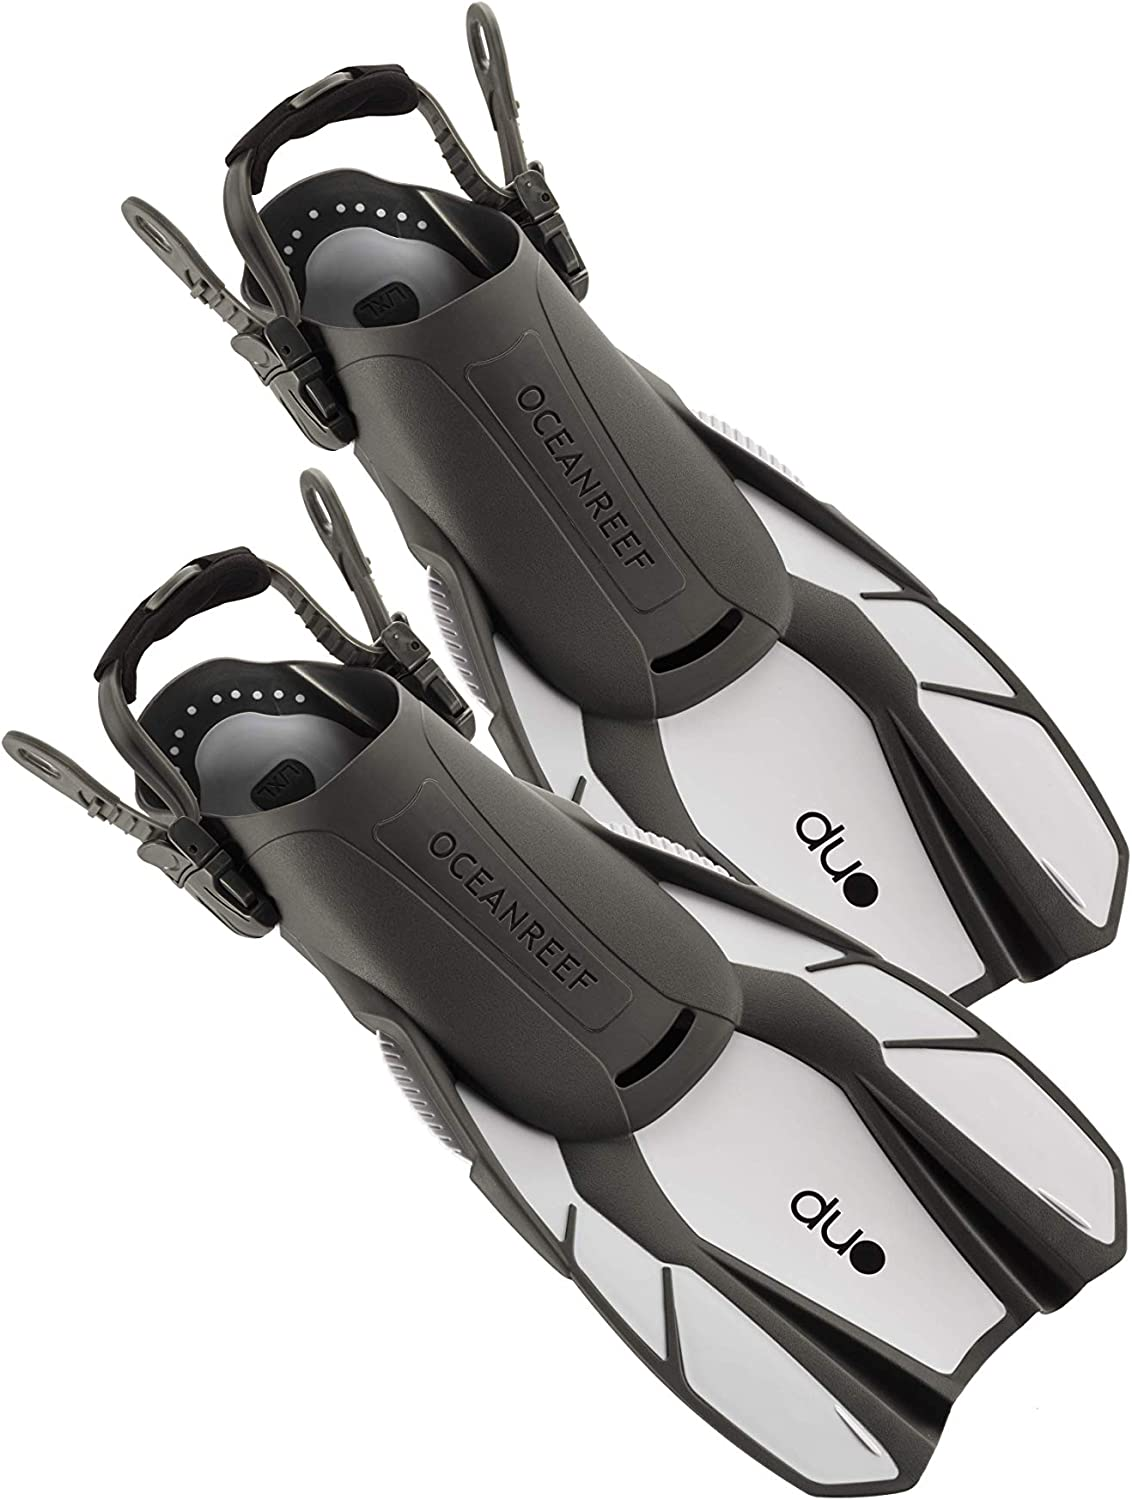 OCEAN REEF Duo Fins Fins for Snorkeling and Swimming and Low Weight for Easy Packing and Traveling